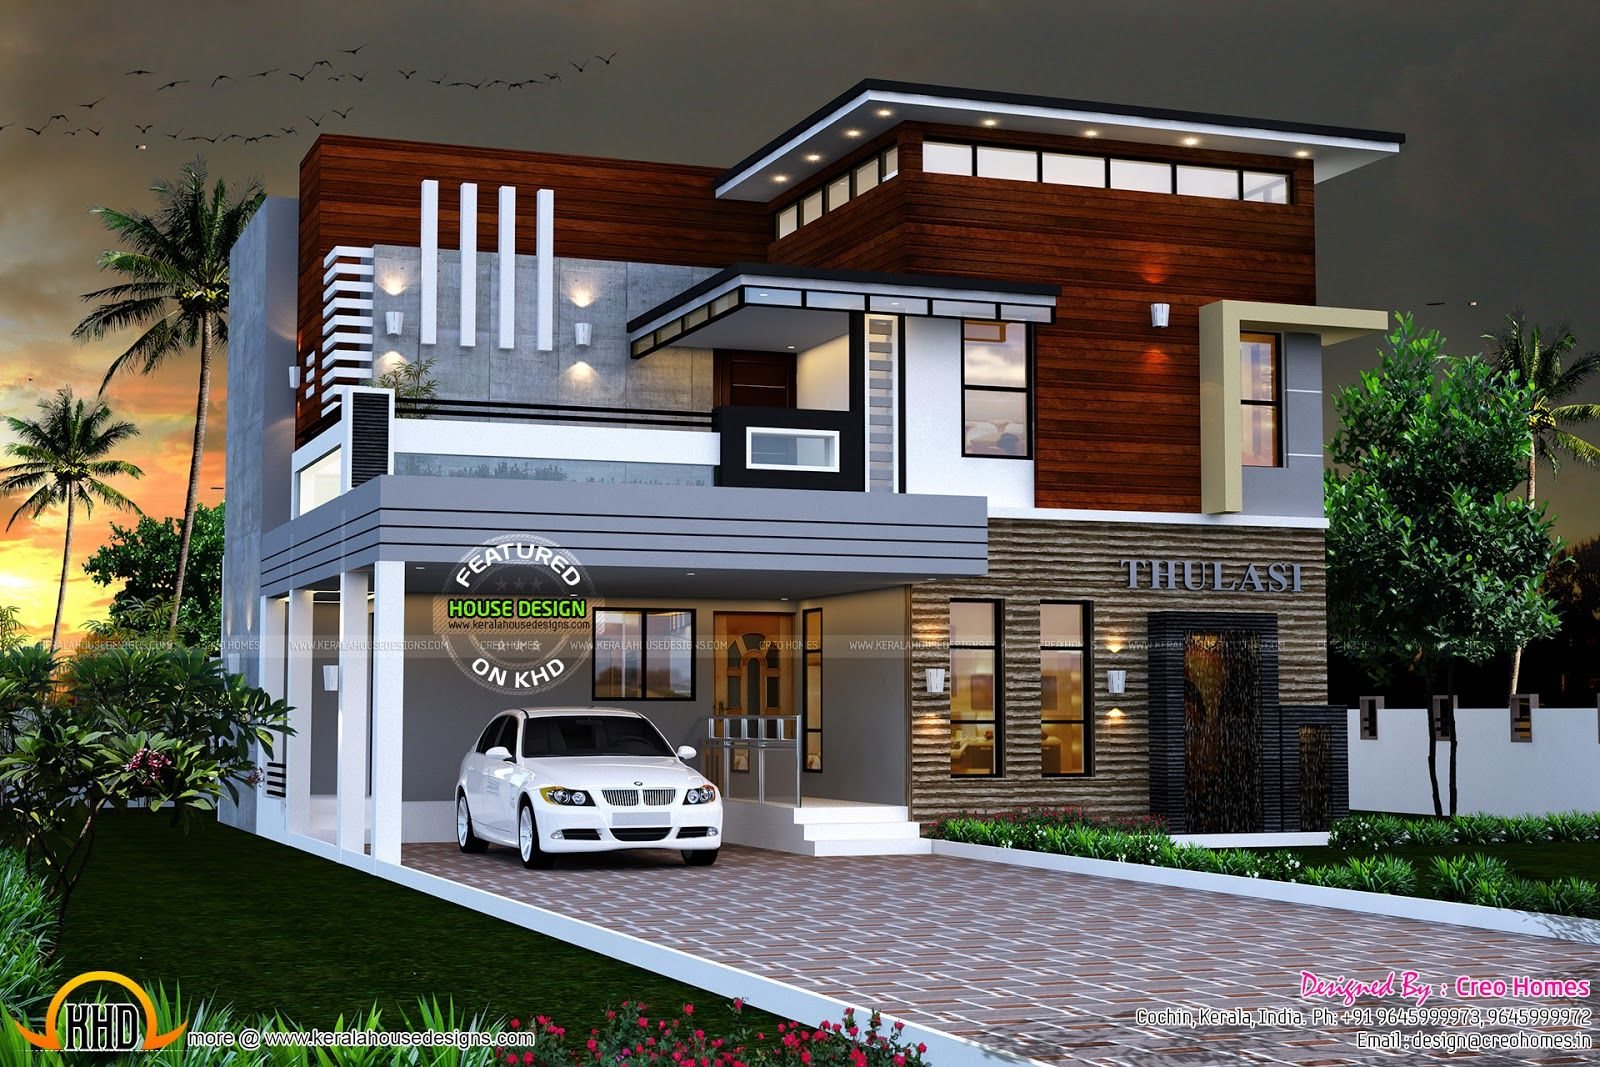 Eterior design modern small house architecture building Contemporary home construction